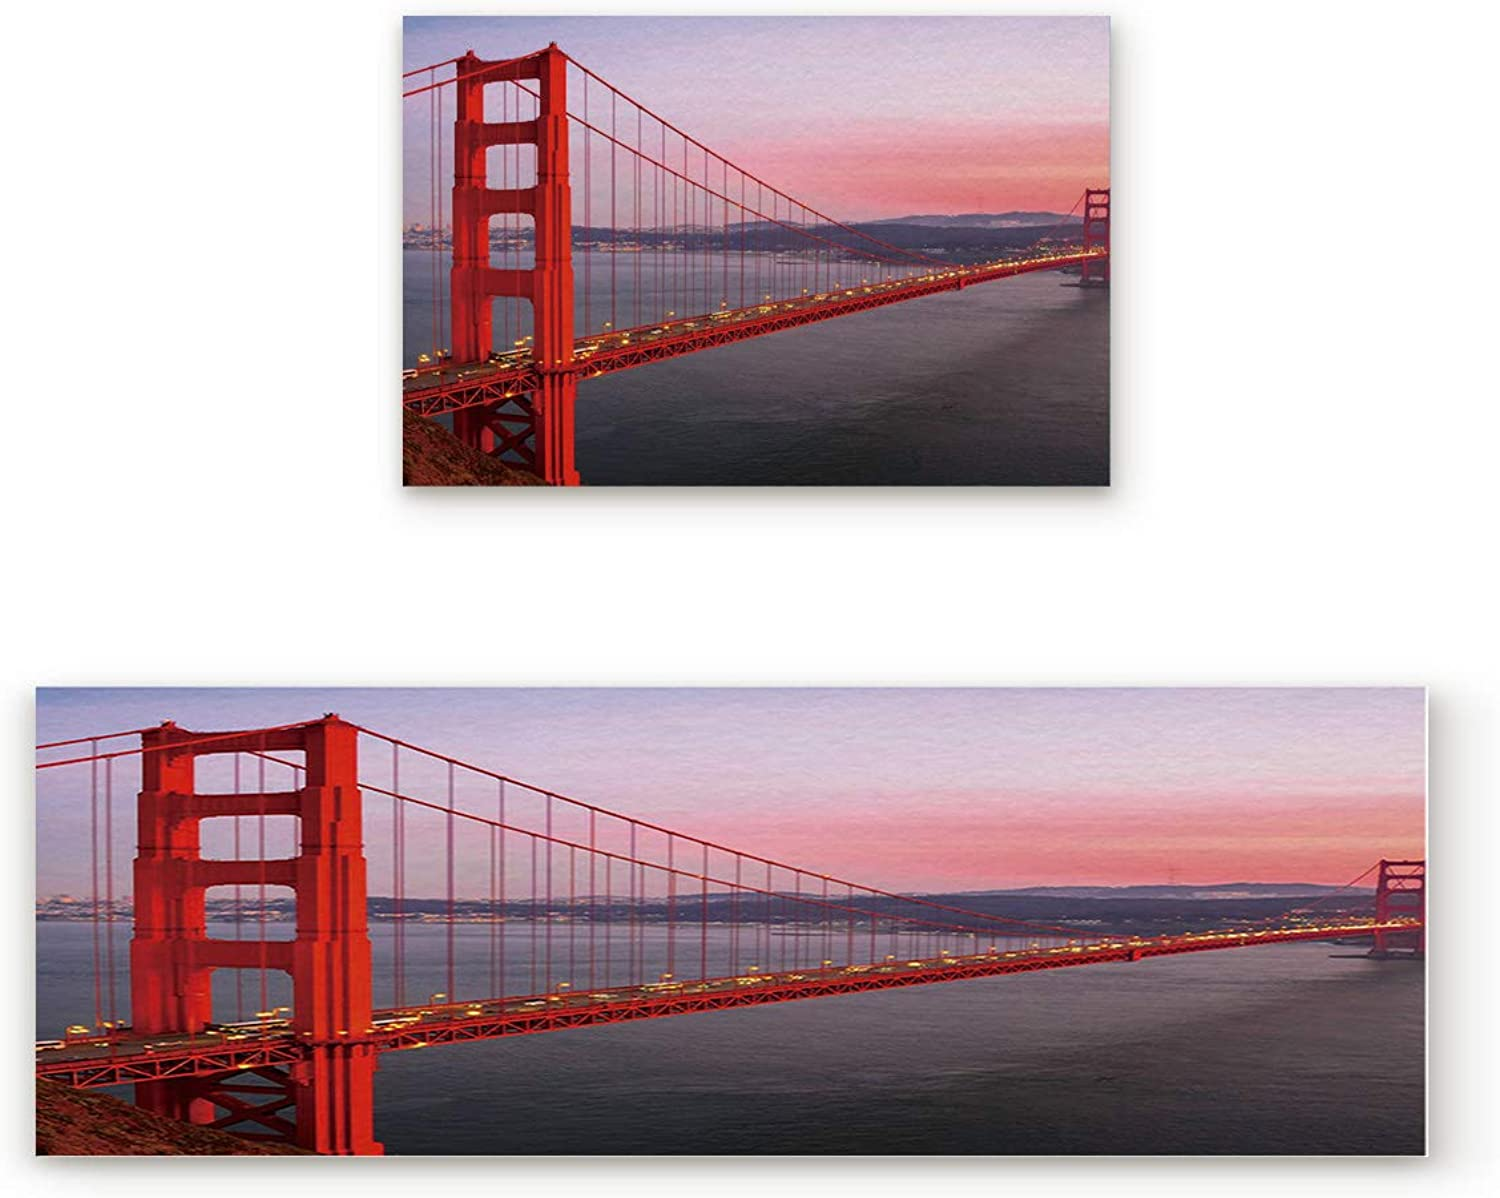 KAROLA 2 Piece Non-Slip Kitchen Mat Doormat Runner Rug Set Thin Low Pile Indoor Area Rugs USA City View golden Gate Bridge Traveling Destination 19.7 x31.5 +19.7 x63